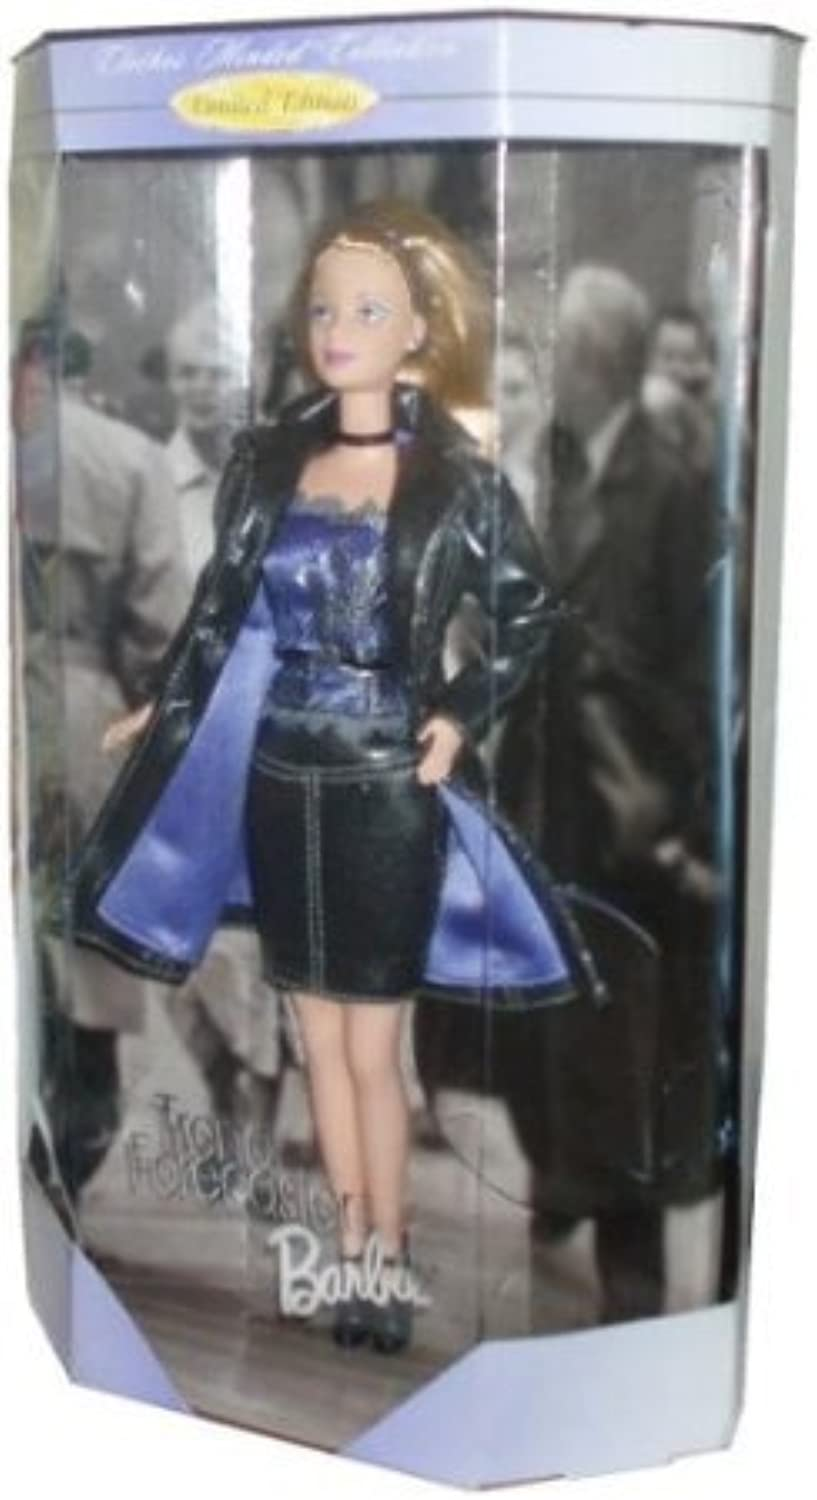 1999 Barbie(バービー) Collectibles - Clothes Minded Collection - Trend Forecaster Barbie(バービー) ドール 人形 フィギュア(並行輸入)